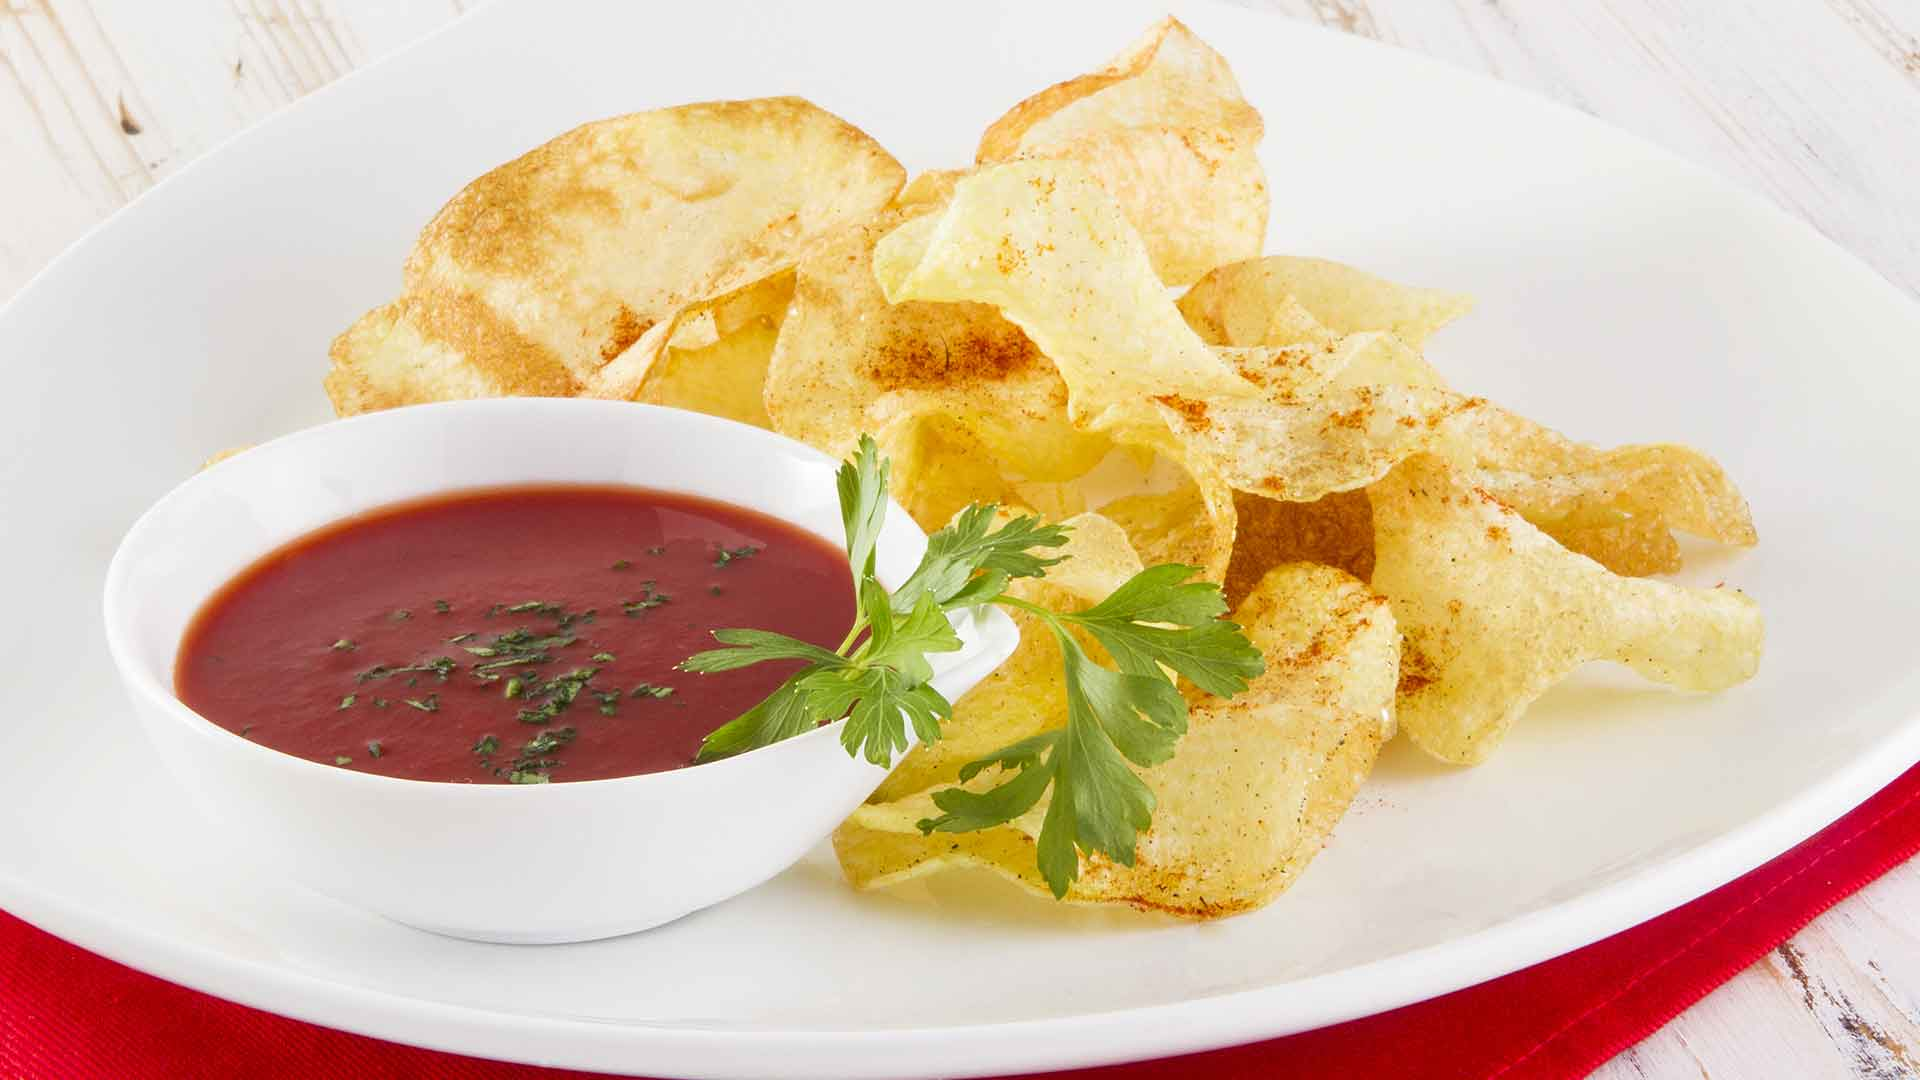 CHIPS PICCANTI DI PATATE CON SALSA DI PIZZUTELLO